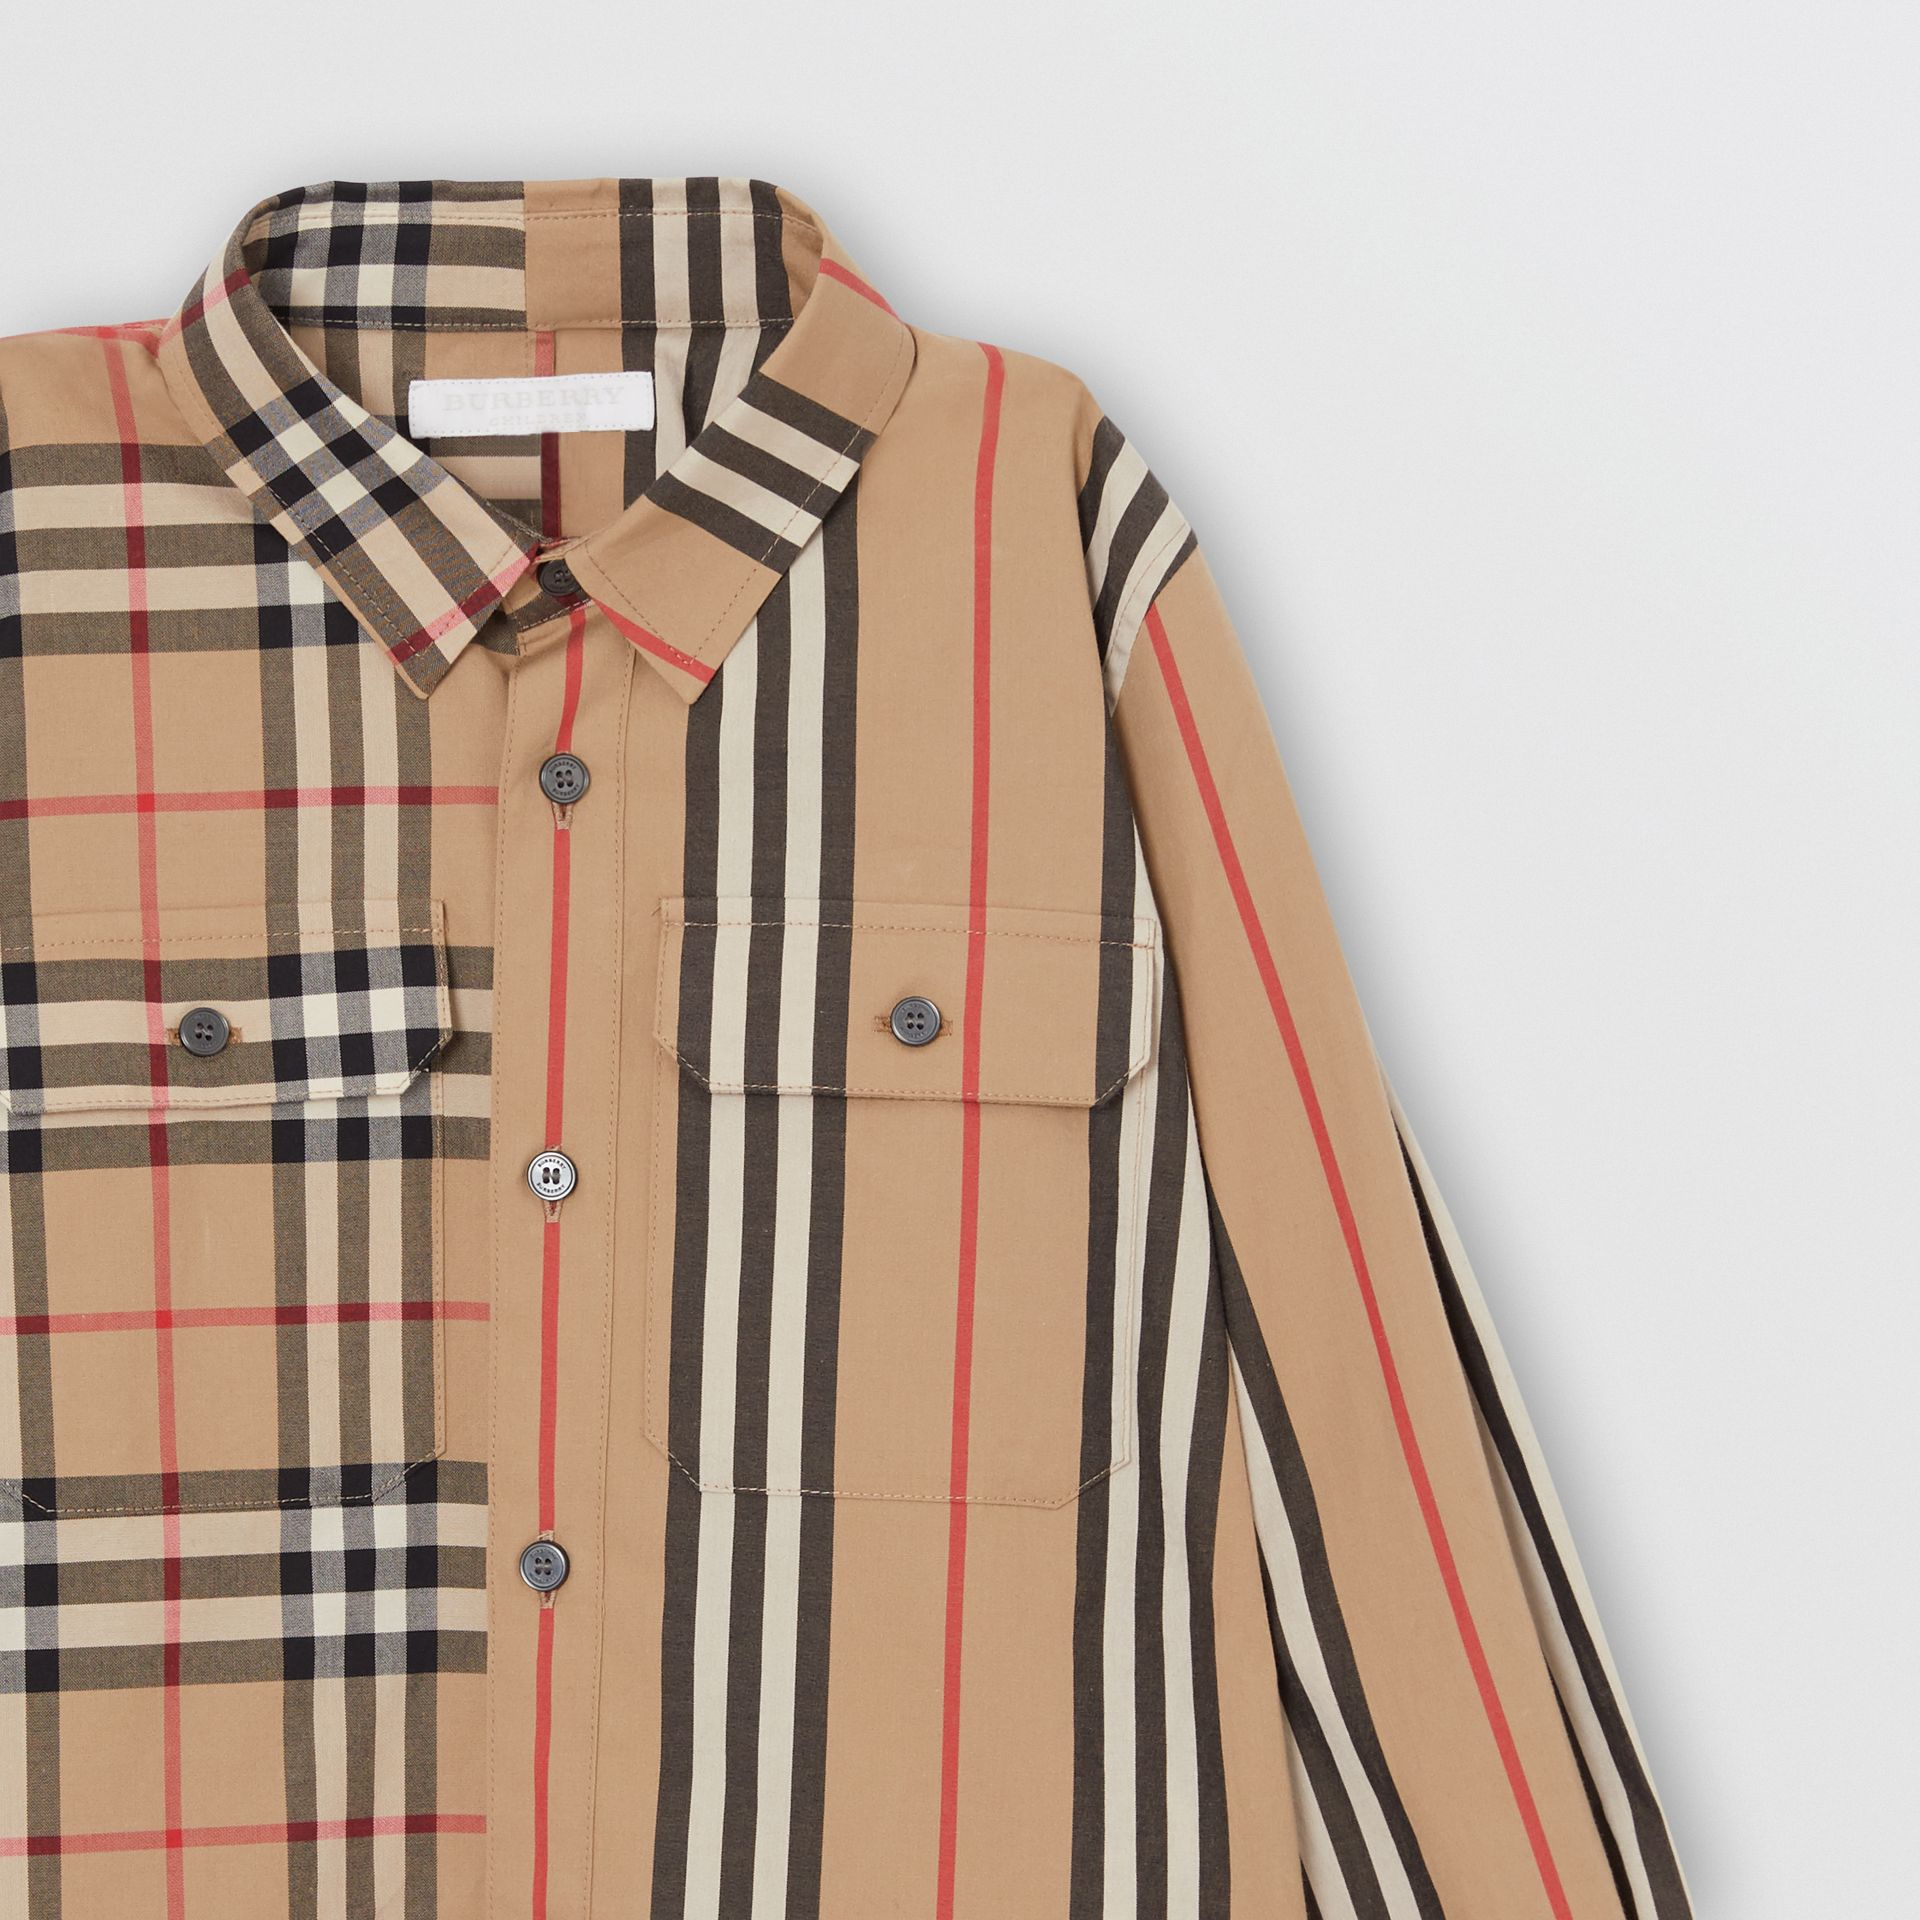 Panelled Vintage Check and Icon Stripe Cotton Shirt in Archive Beige | Burberry Australia - gallery image 4